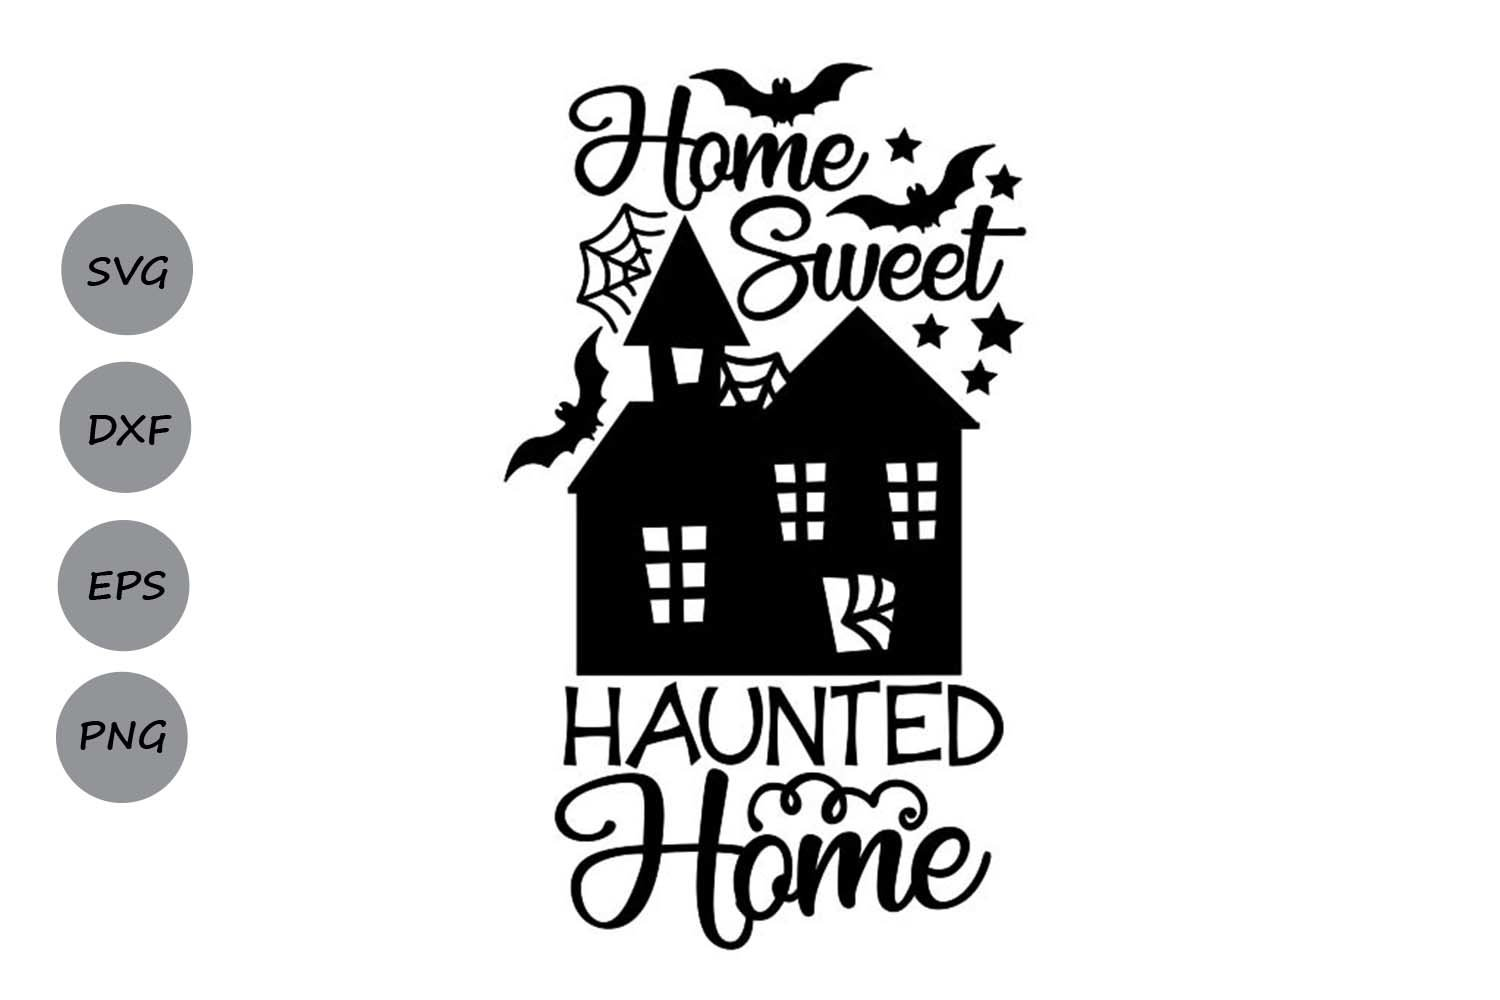 Home Sweet Haunted Home Svg Halloween Svg Haunted House 362485 Cut Files Design Bundles